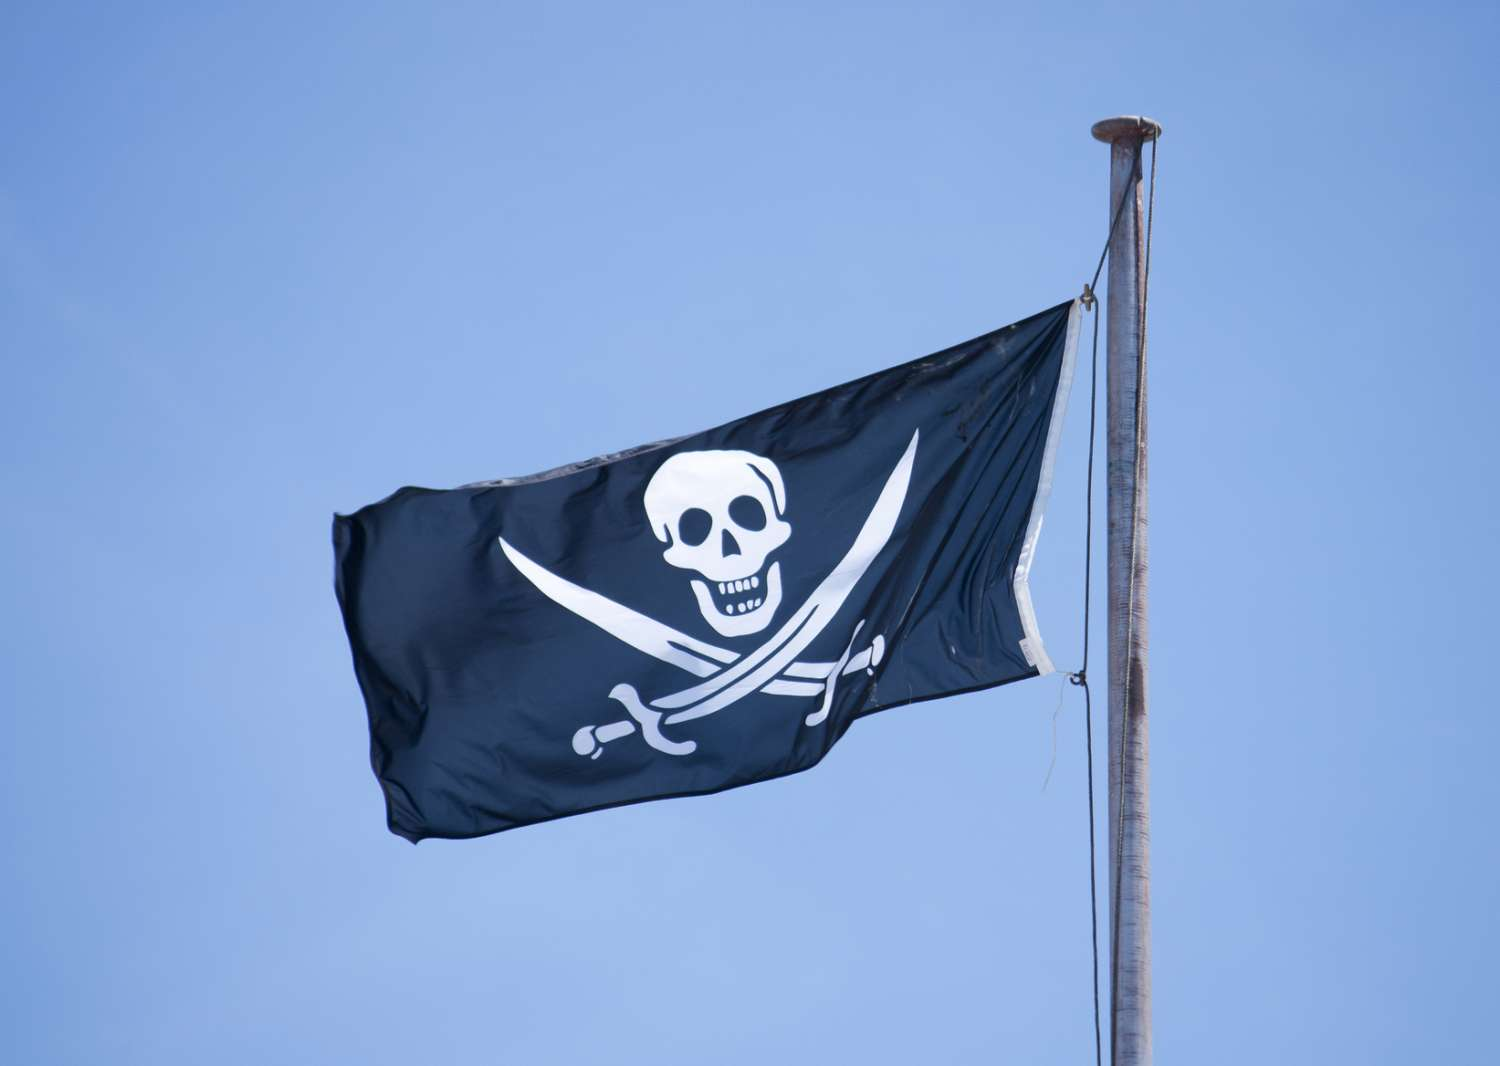 jolly-roger,-pirate, flag, printed, black, white, ship, dress up,